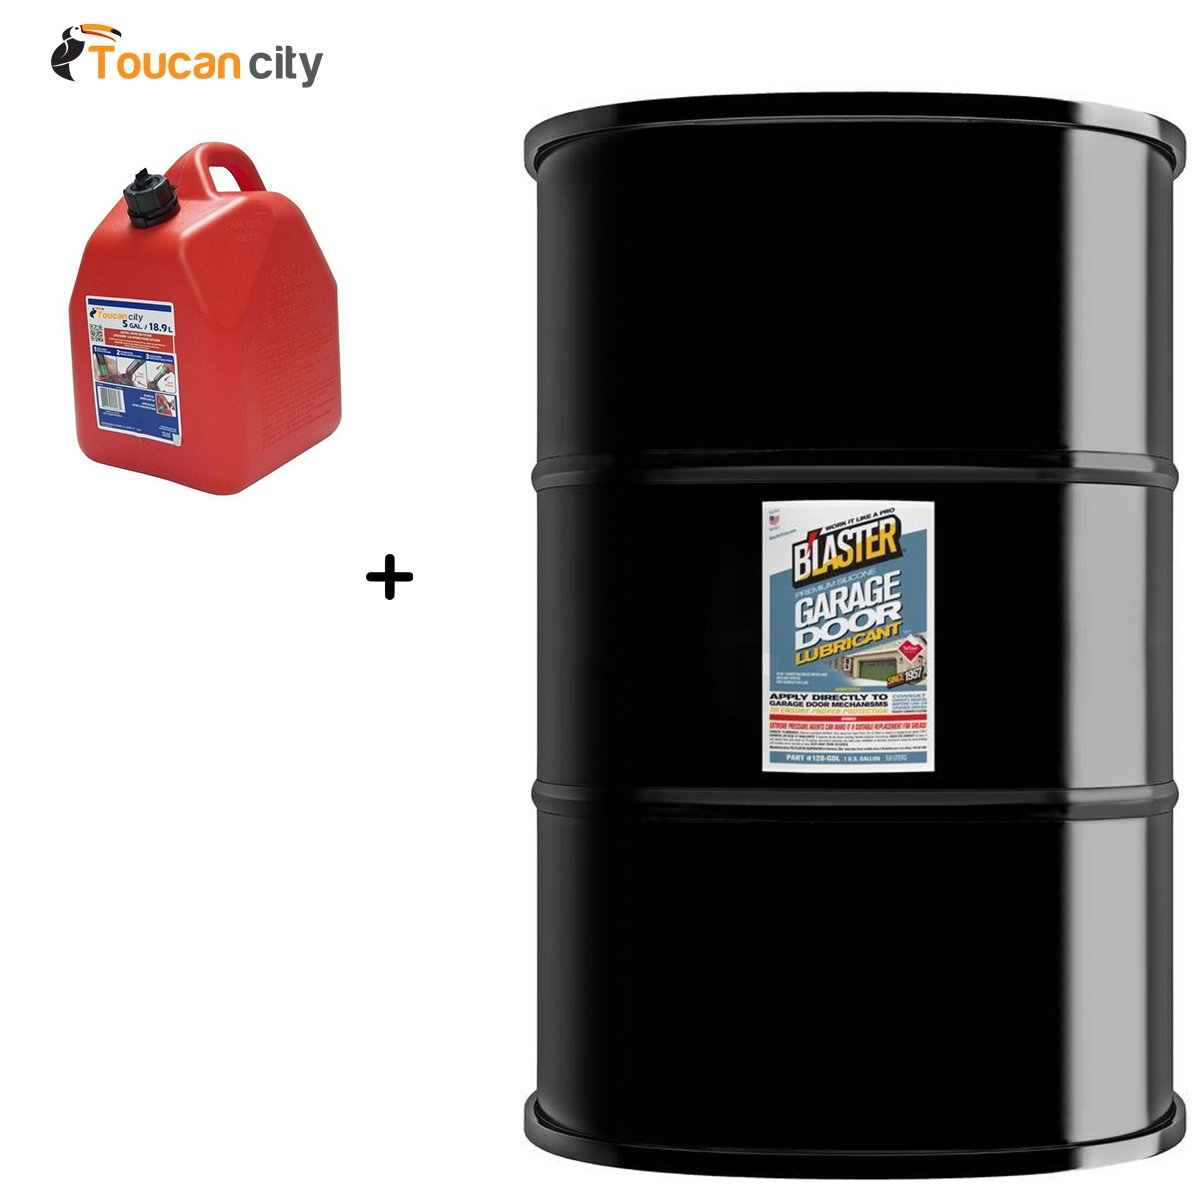 Blaster 55 Gal. Drum Premium Garage Door Lubricant 55-GDL and Toucan City Gas Can